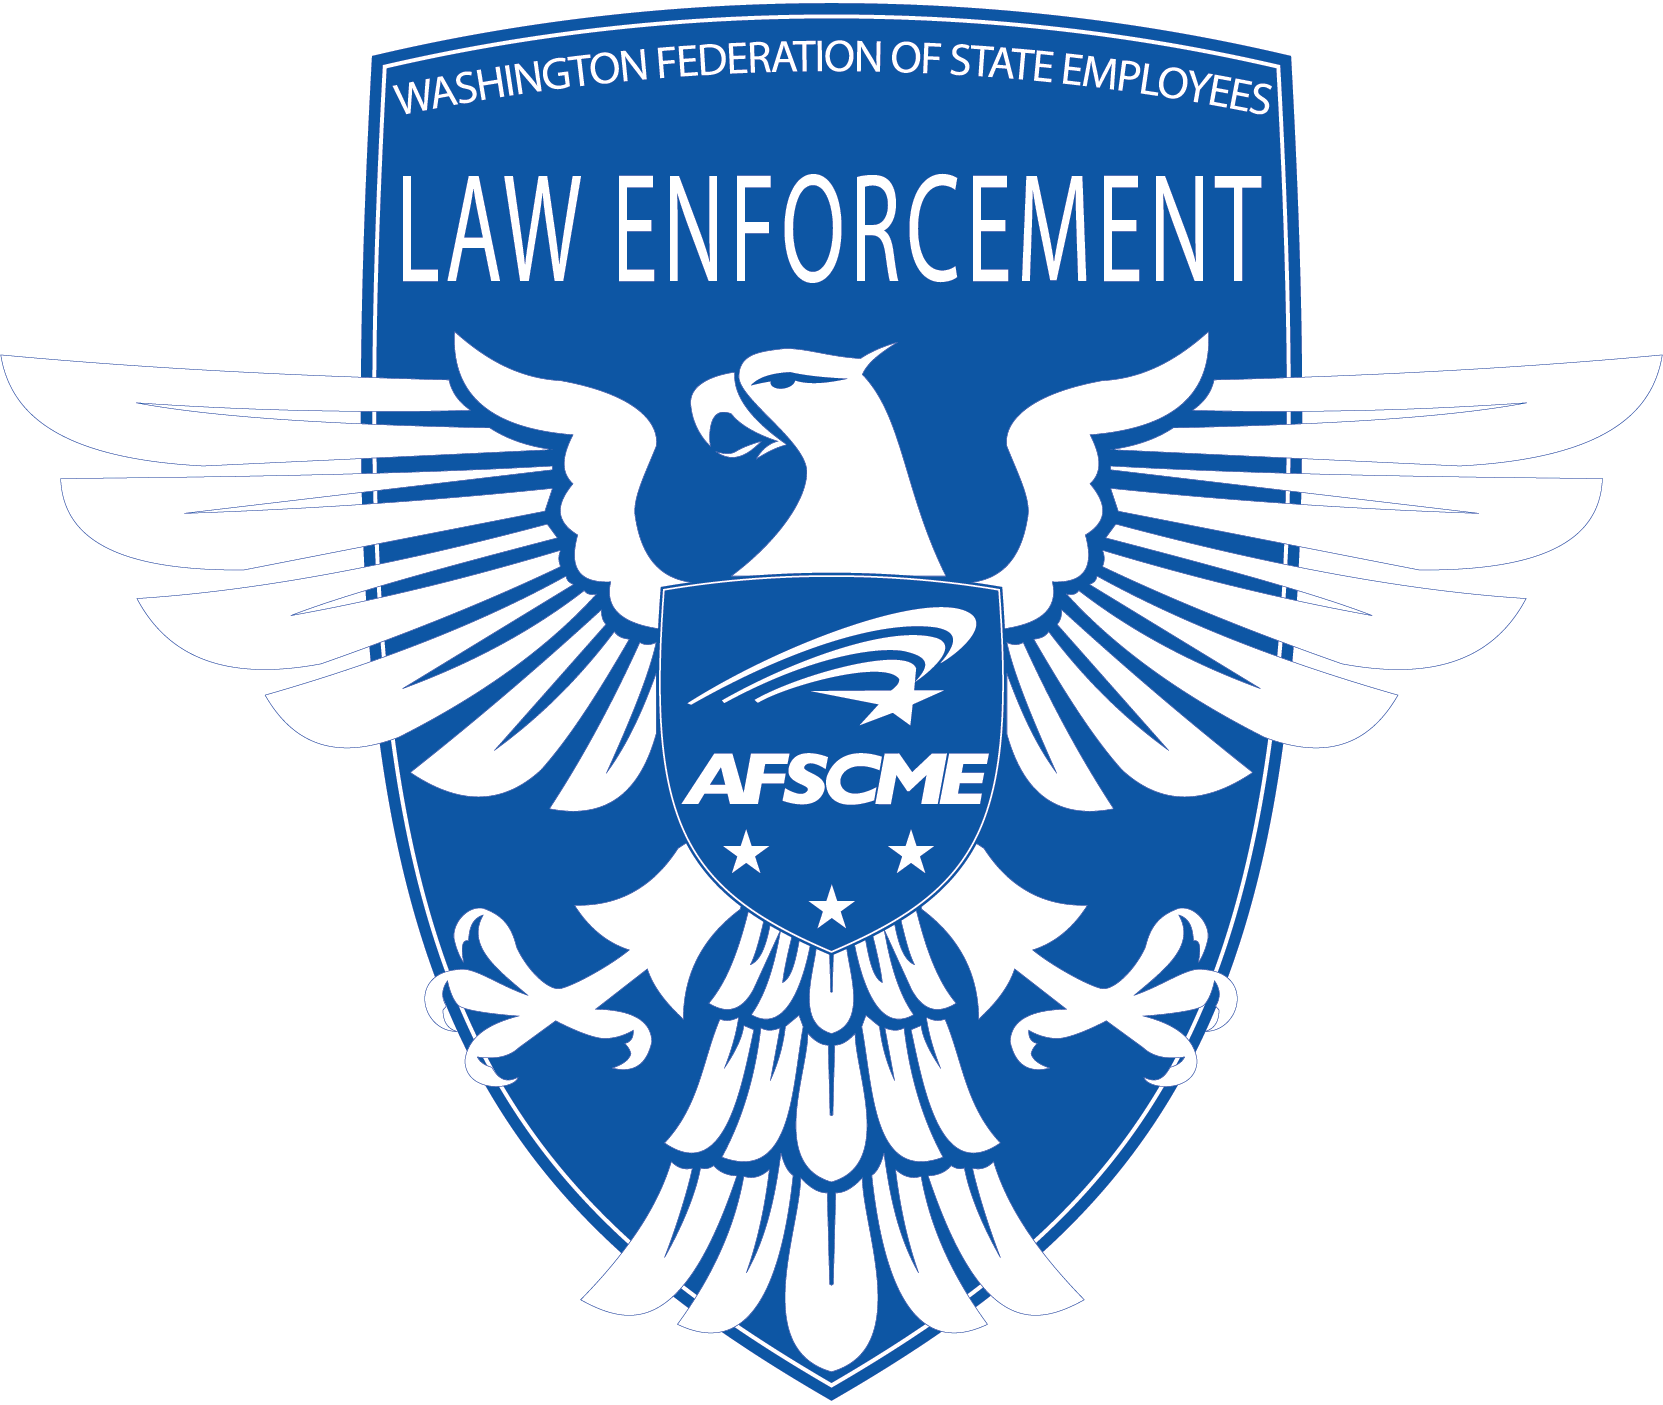 Law Enforcement WFSE